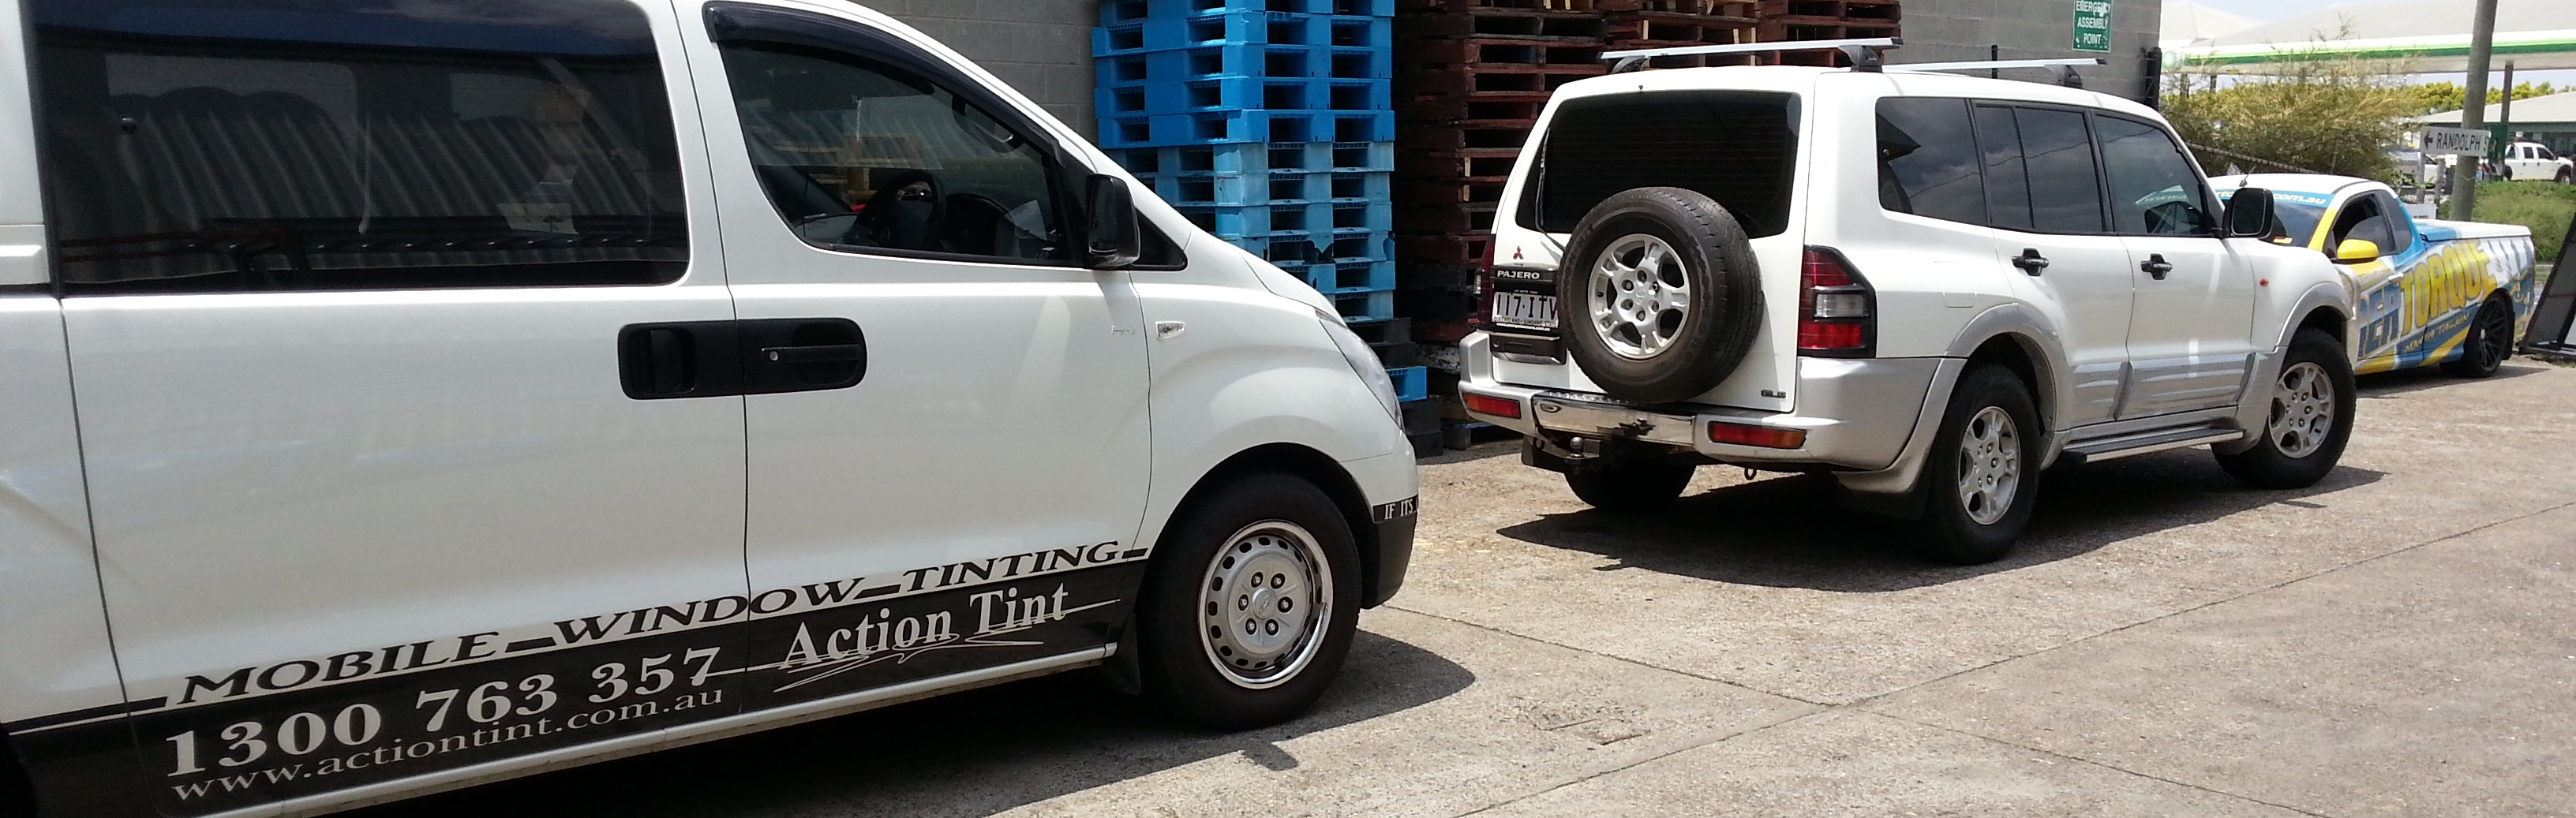 Mobile Tinting at work places Pajero